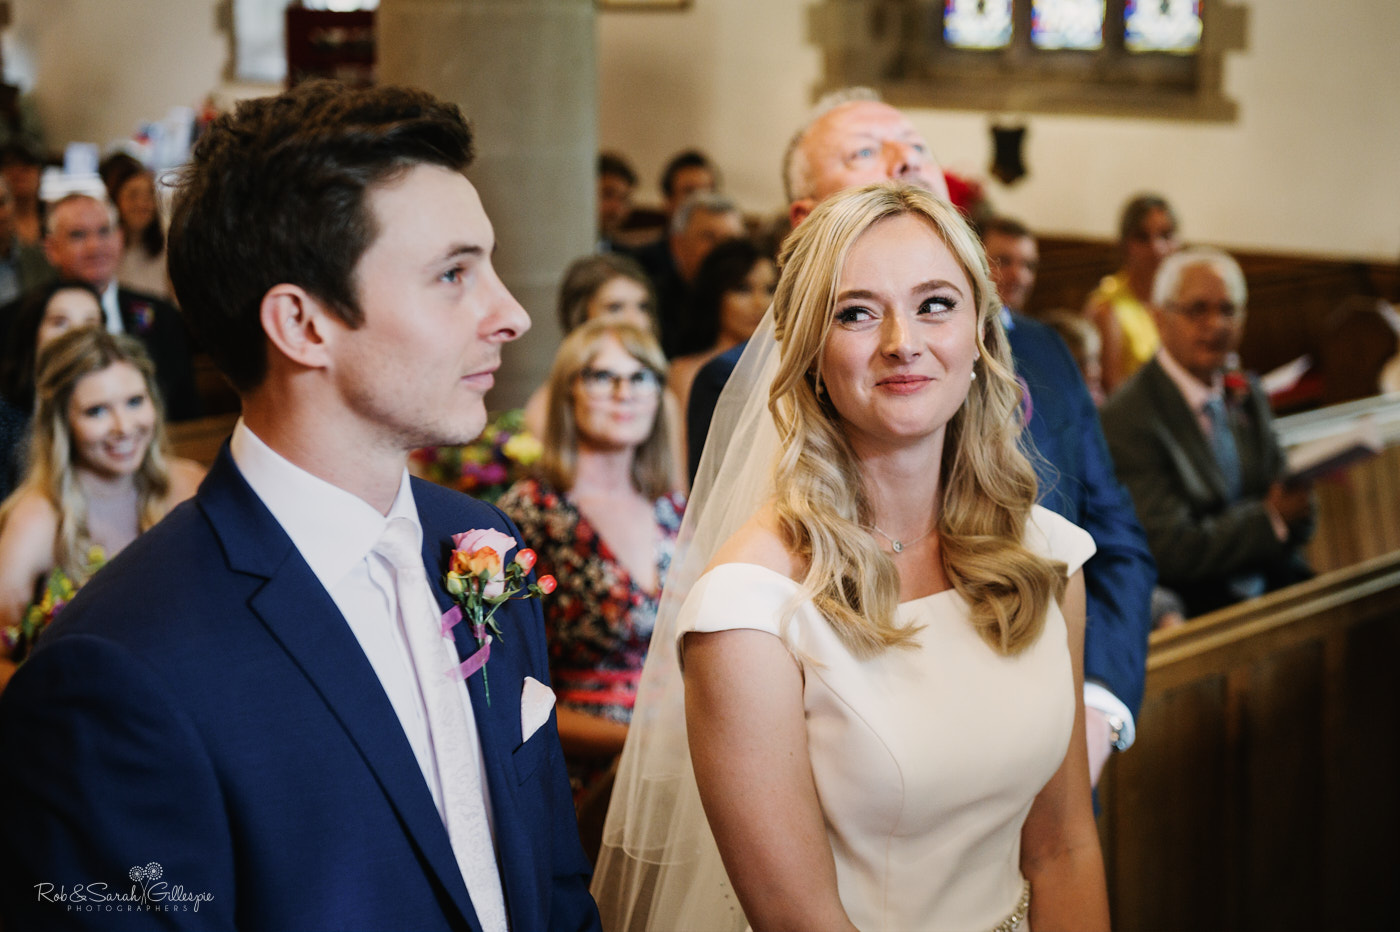 Bride smiles at groom during wedding ceremony in church